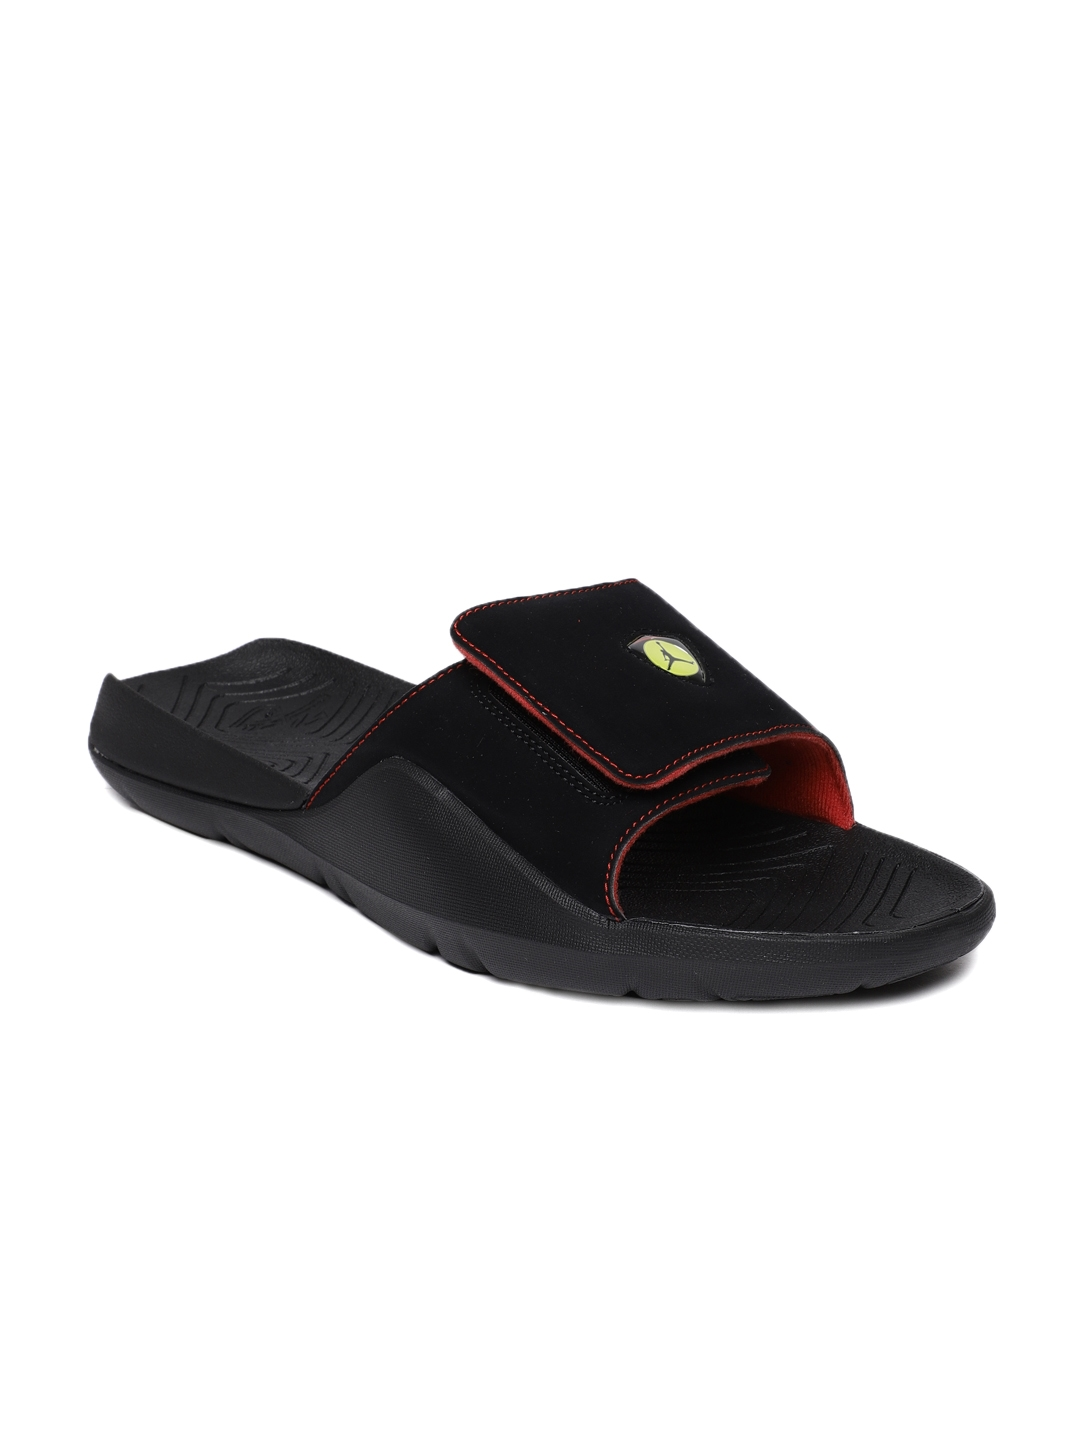 a91b9378c Buy Nike Men Black Jordan Hydro 7 Solid Sliders - Flip Flops for Men ...